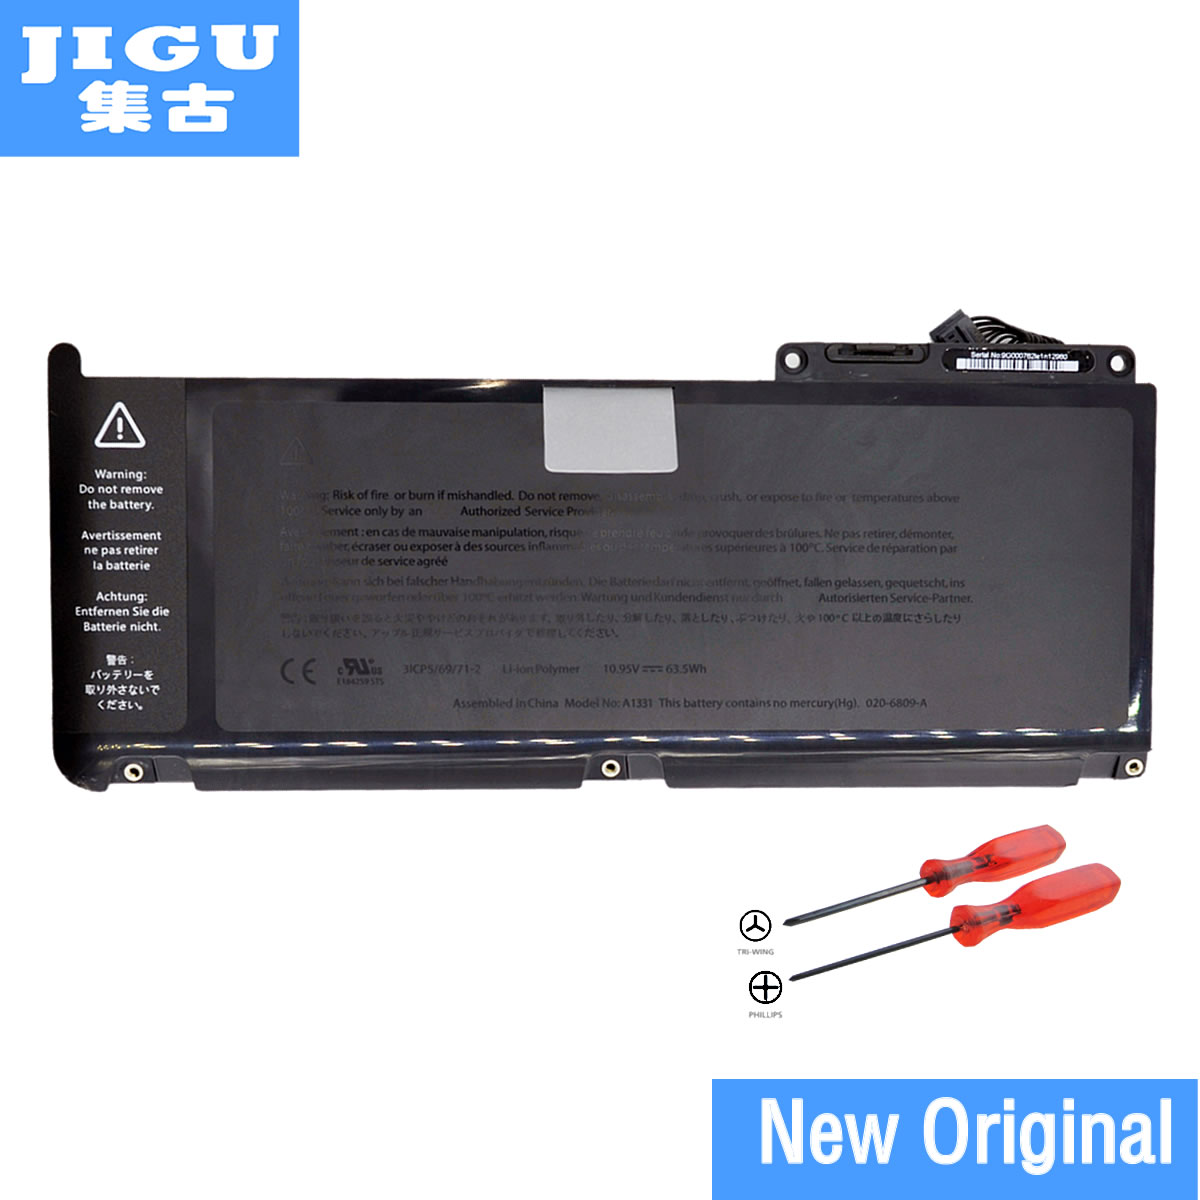 JIGU Free shipping A1331 Original Laptop Battery For Apple MacBook A1342 MC207 MC516 For MacBook 13 Pro 15 17 13.3 new original 13 inch a1708 laptop a1713 battery 11 4v 54 5 wh for apple macbook pro retina 13 a1708 battery a1713 free shipping